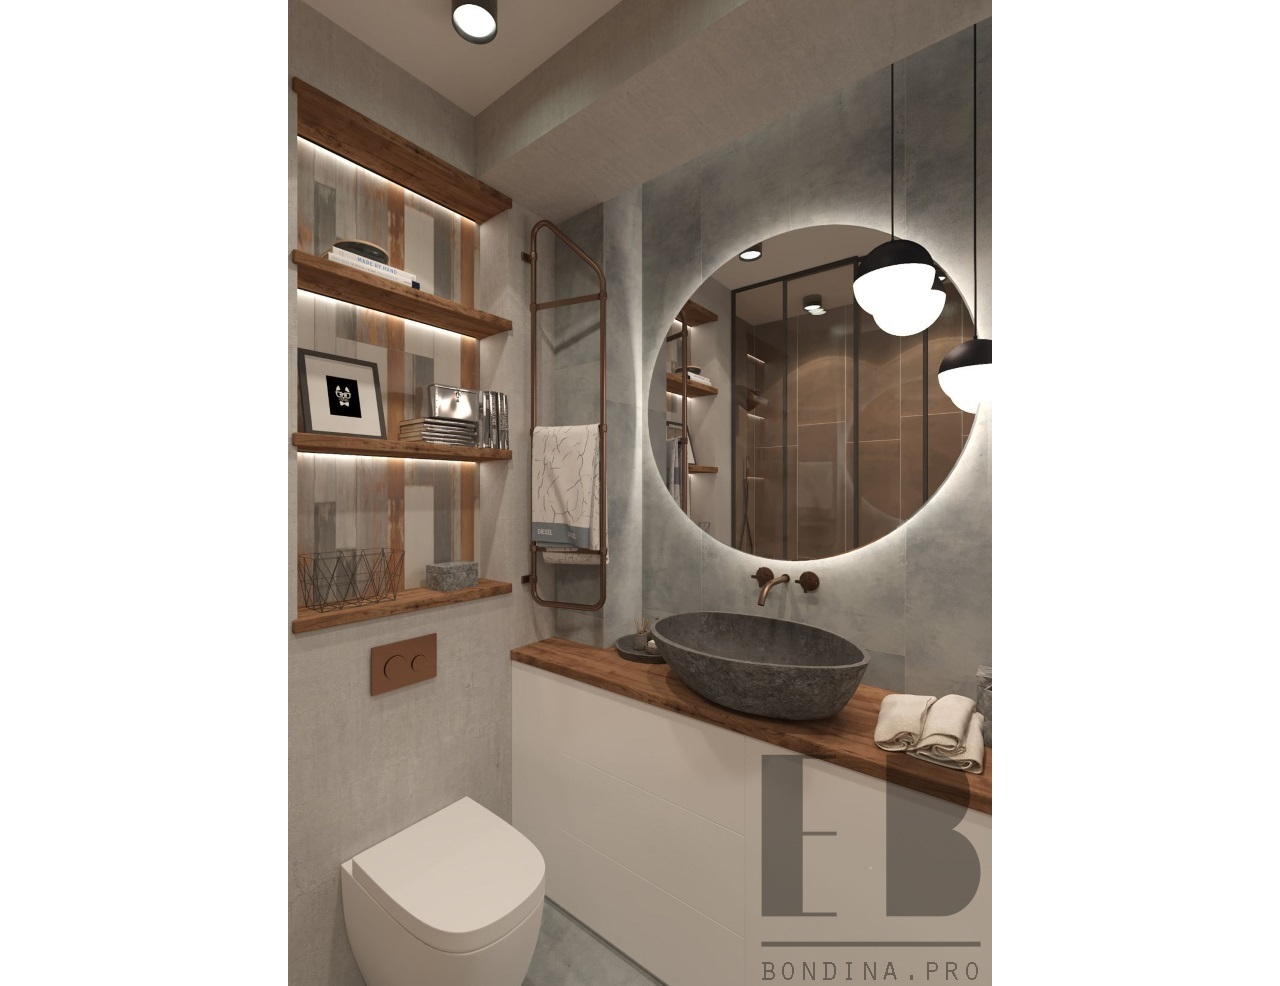 Loft style bathroom design